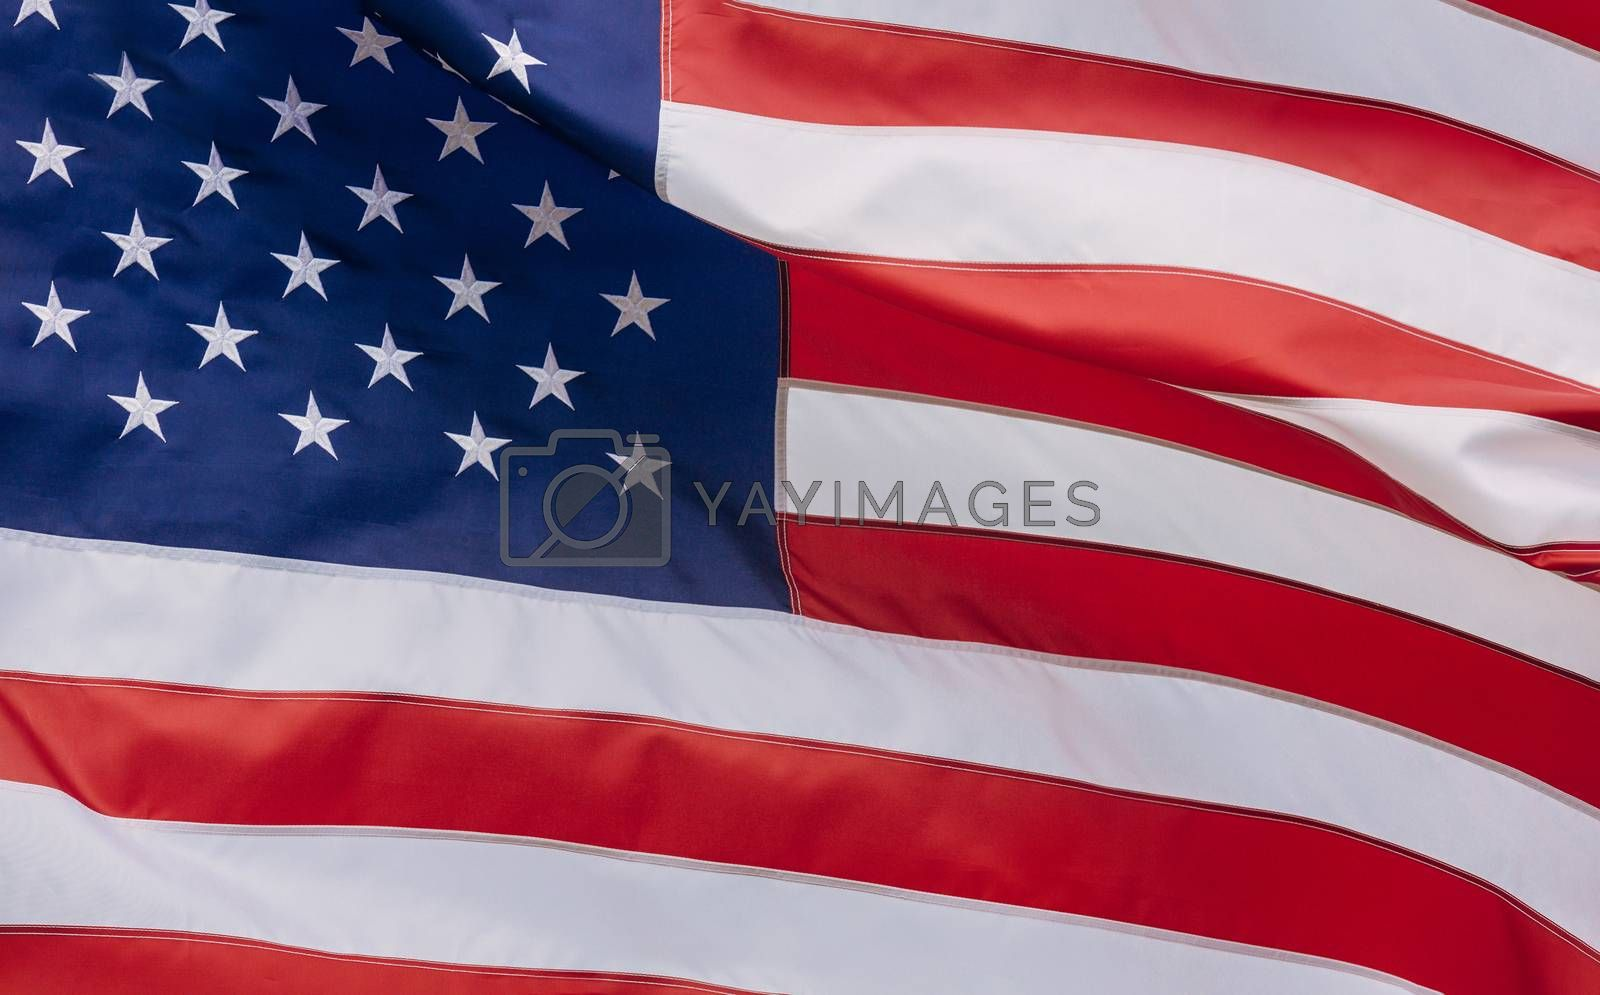 Royalty free image of Flag of the USA with sunflare by ungvar